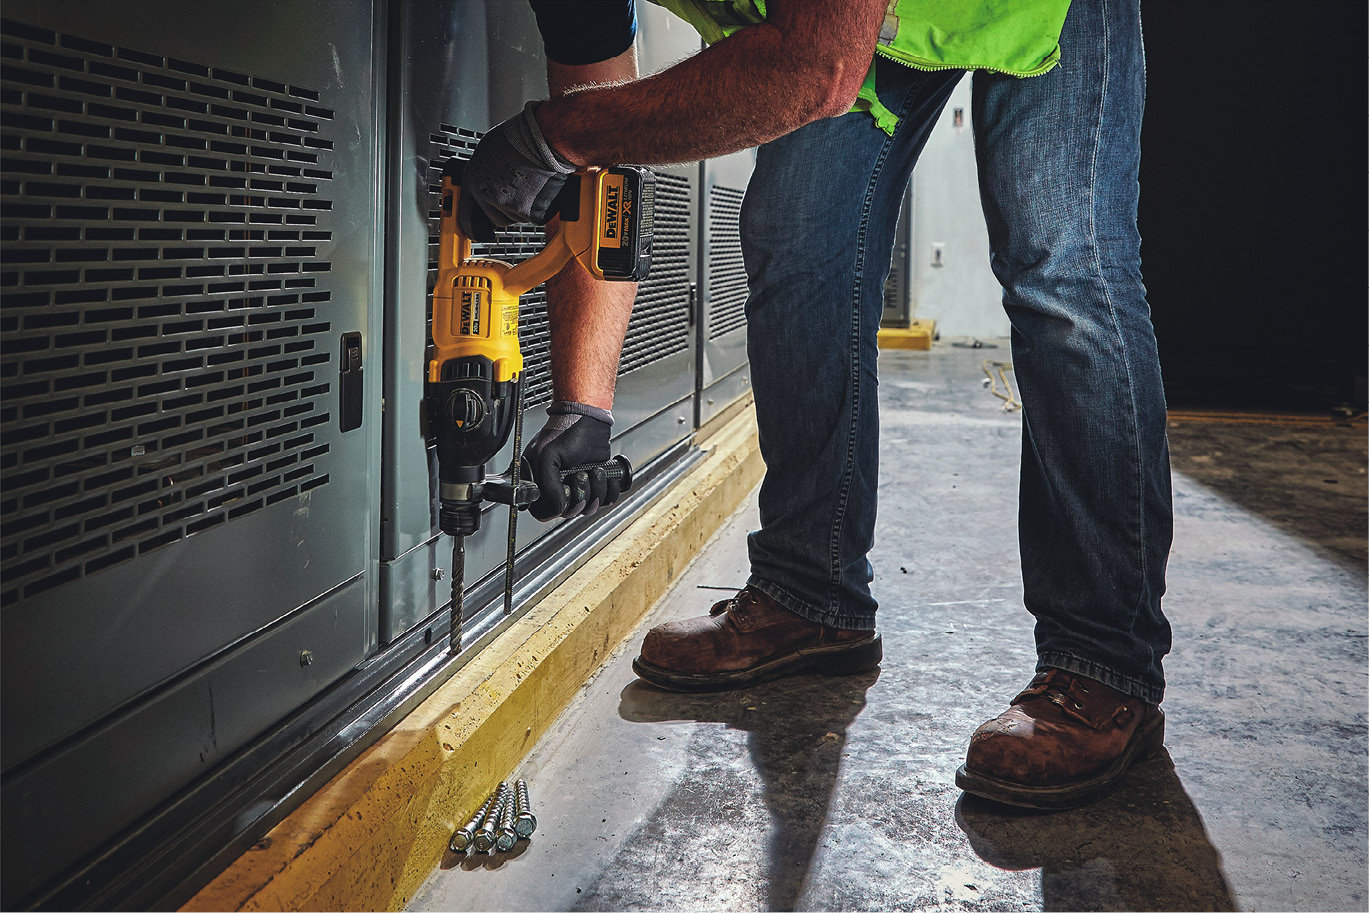 Cordless tools have the reputation of being industry lightweights, but improved battery technology is taking them out of the home shop and into heavy-duty work situations.